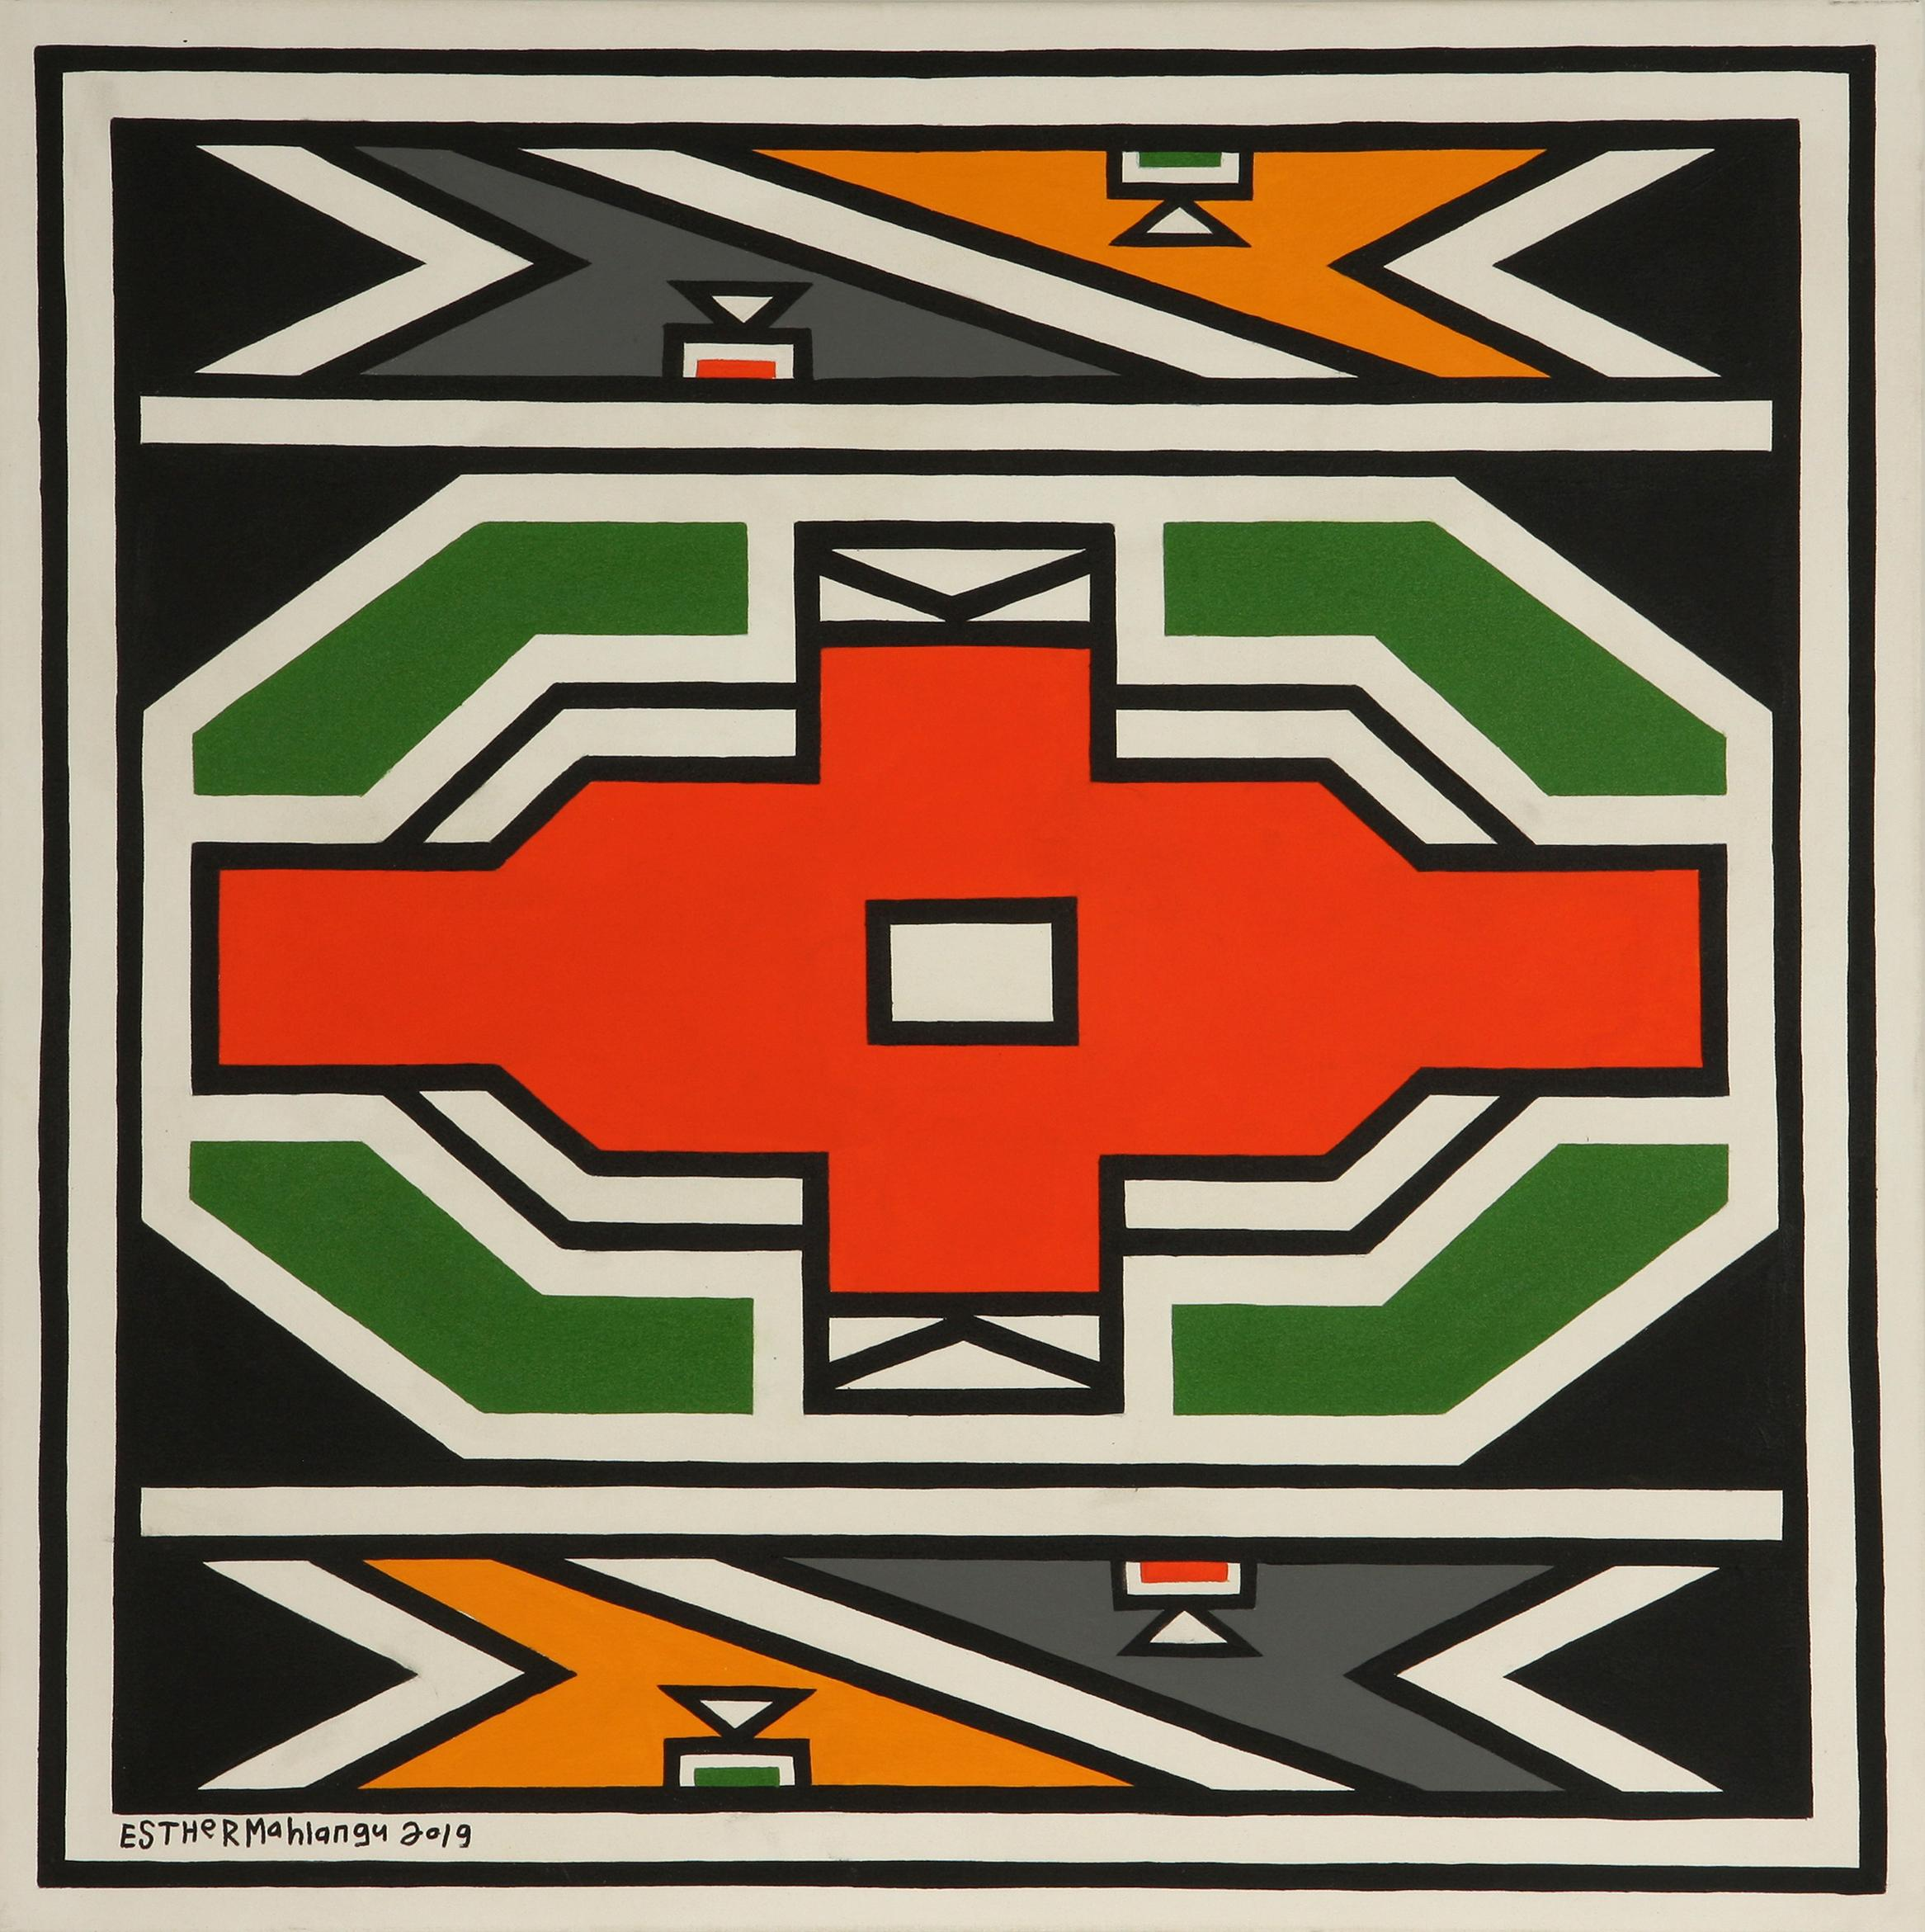 Esther Mahlangu (South Africa 1935-) Ndebele Abstract, 2019